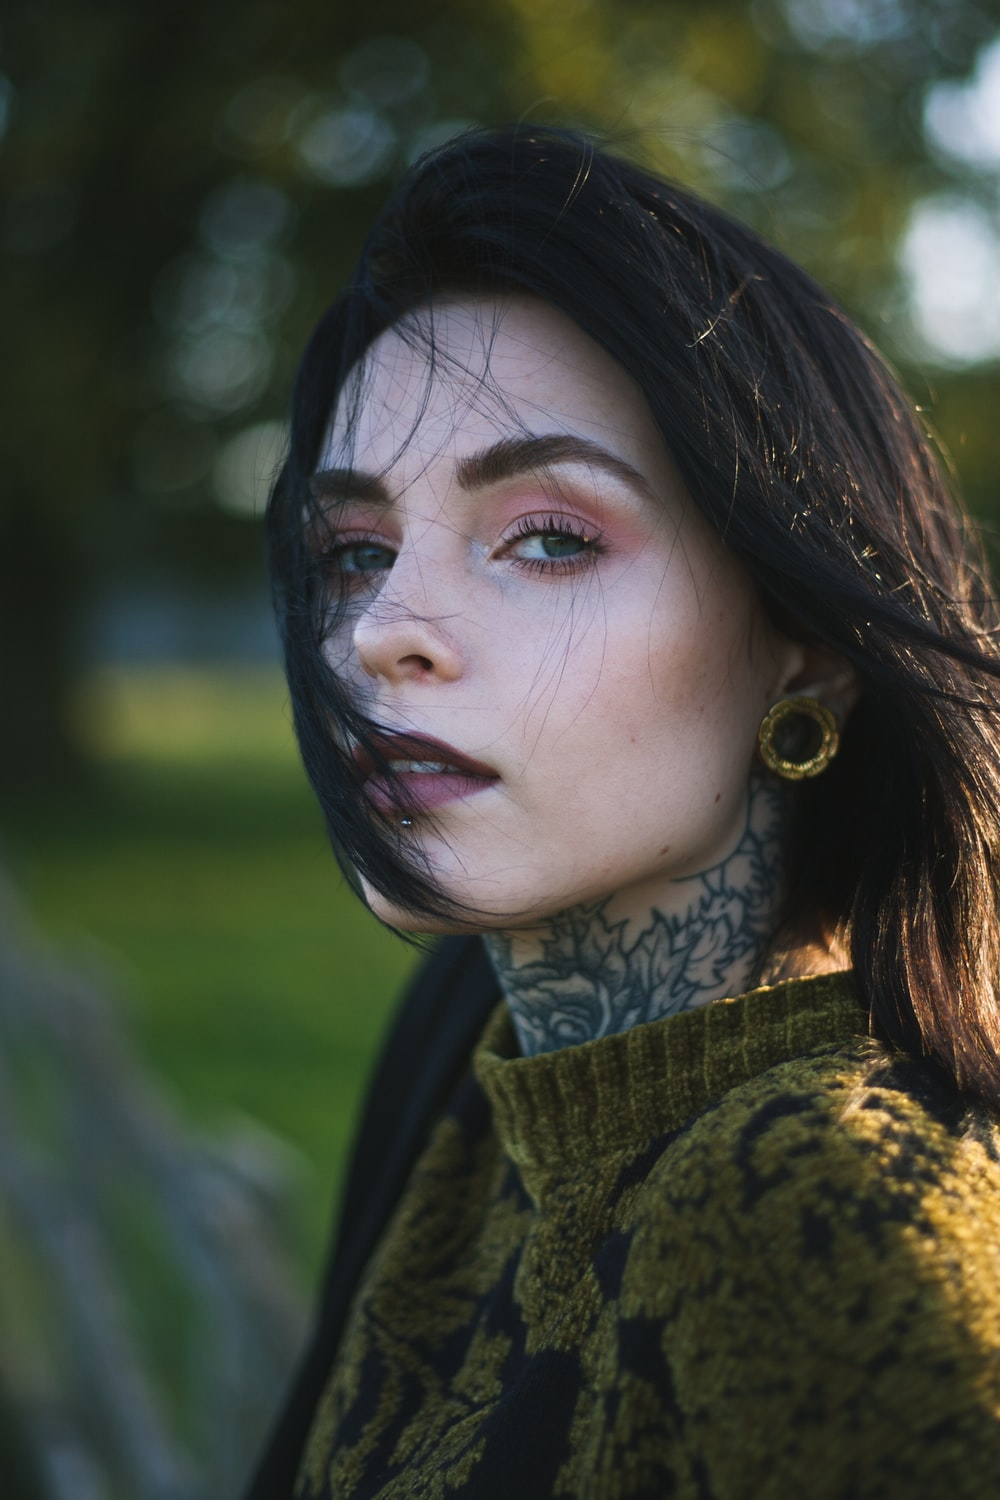 woman in floral sweater with neck tattoo and purple lipstick